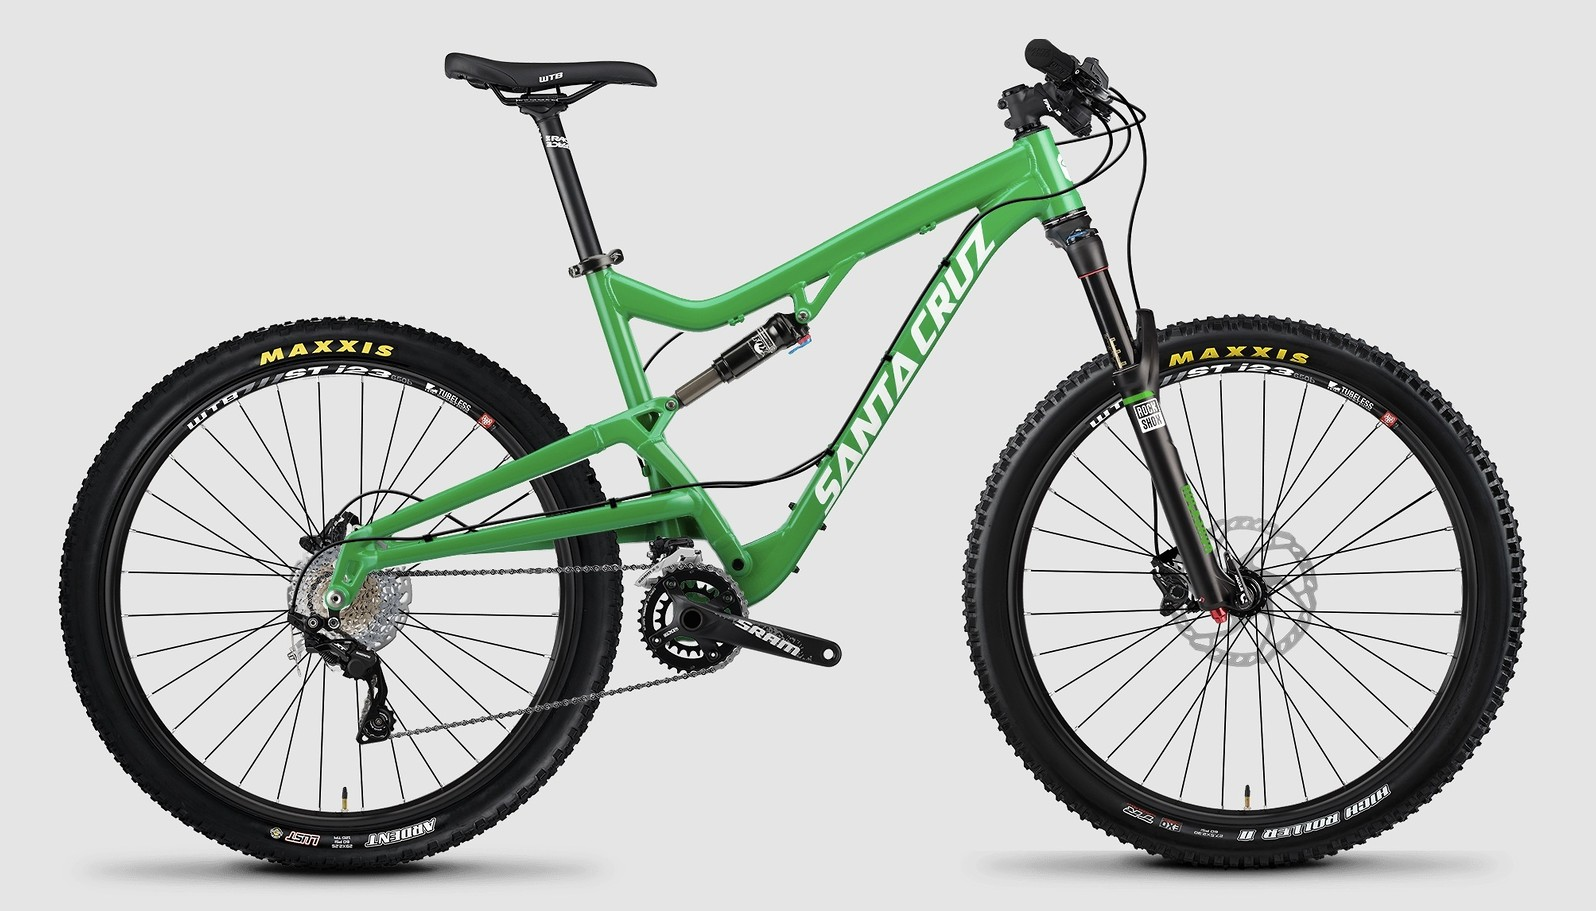 2015 Santa Cruz Bantam R bike - green